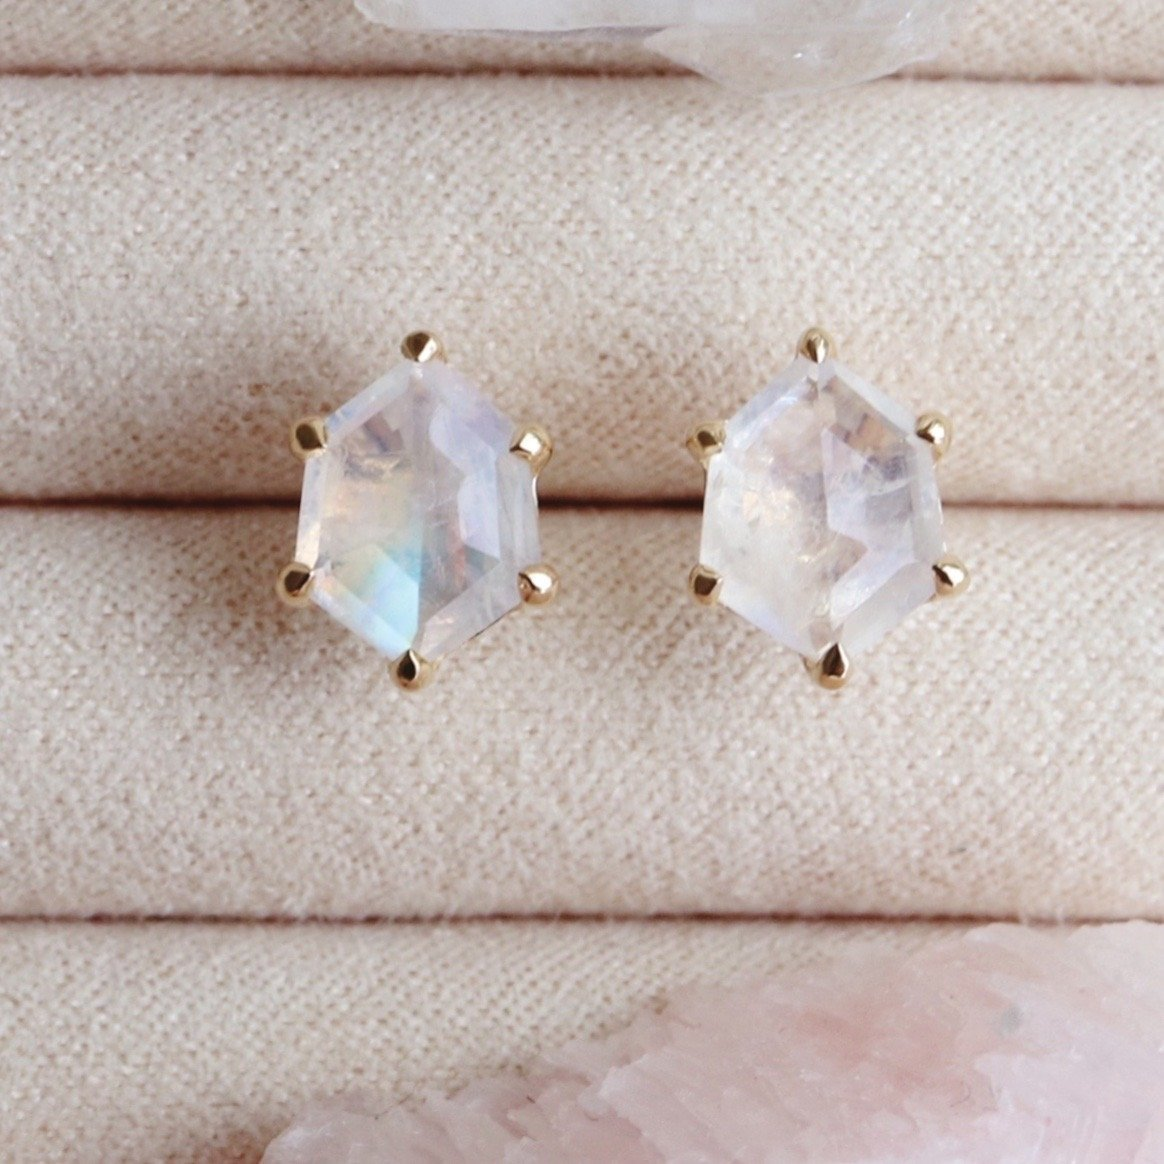 MINI HONOUR SHIELD STUD EARRINGS - RAINBOW MOONSTONE & GOLD - SO PRETTY CARA COTTER